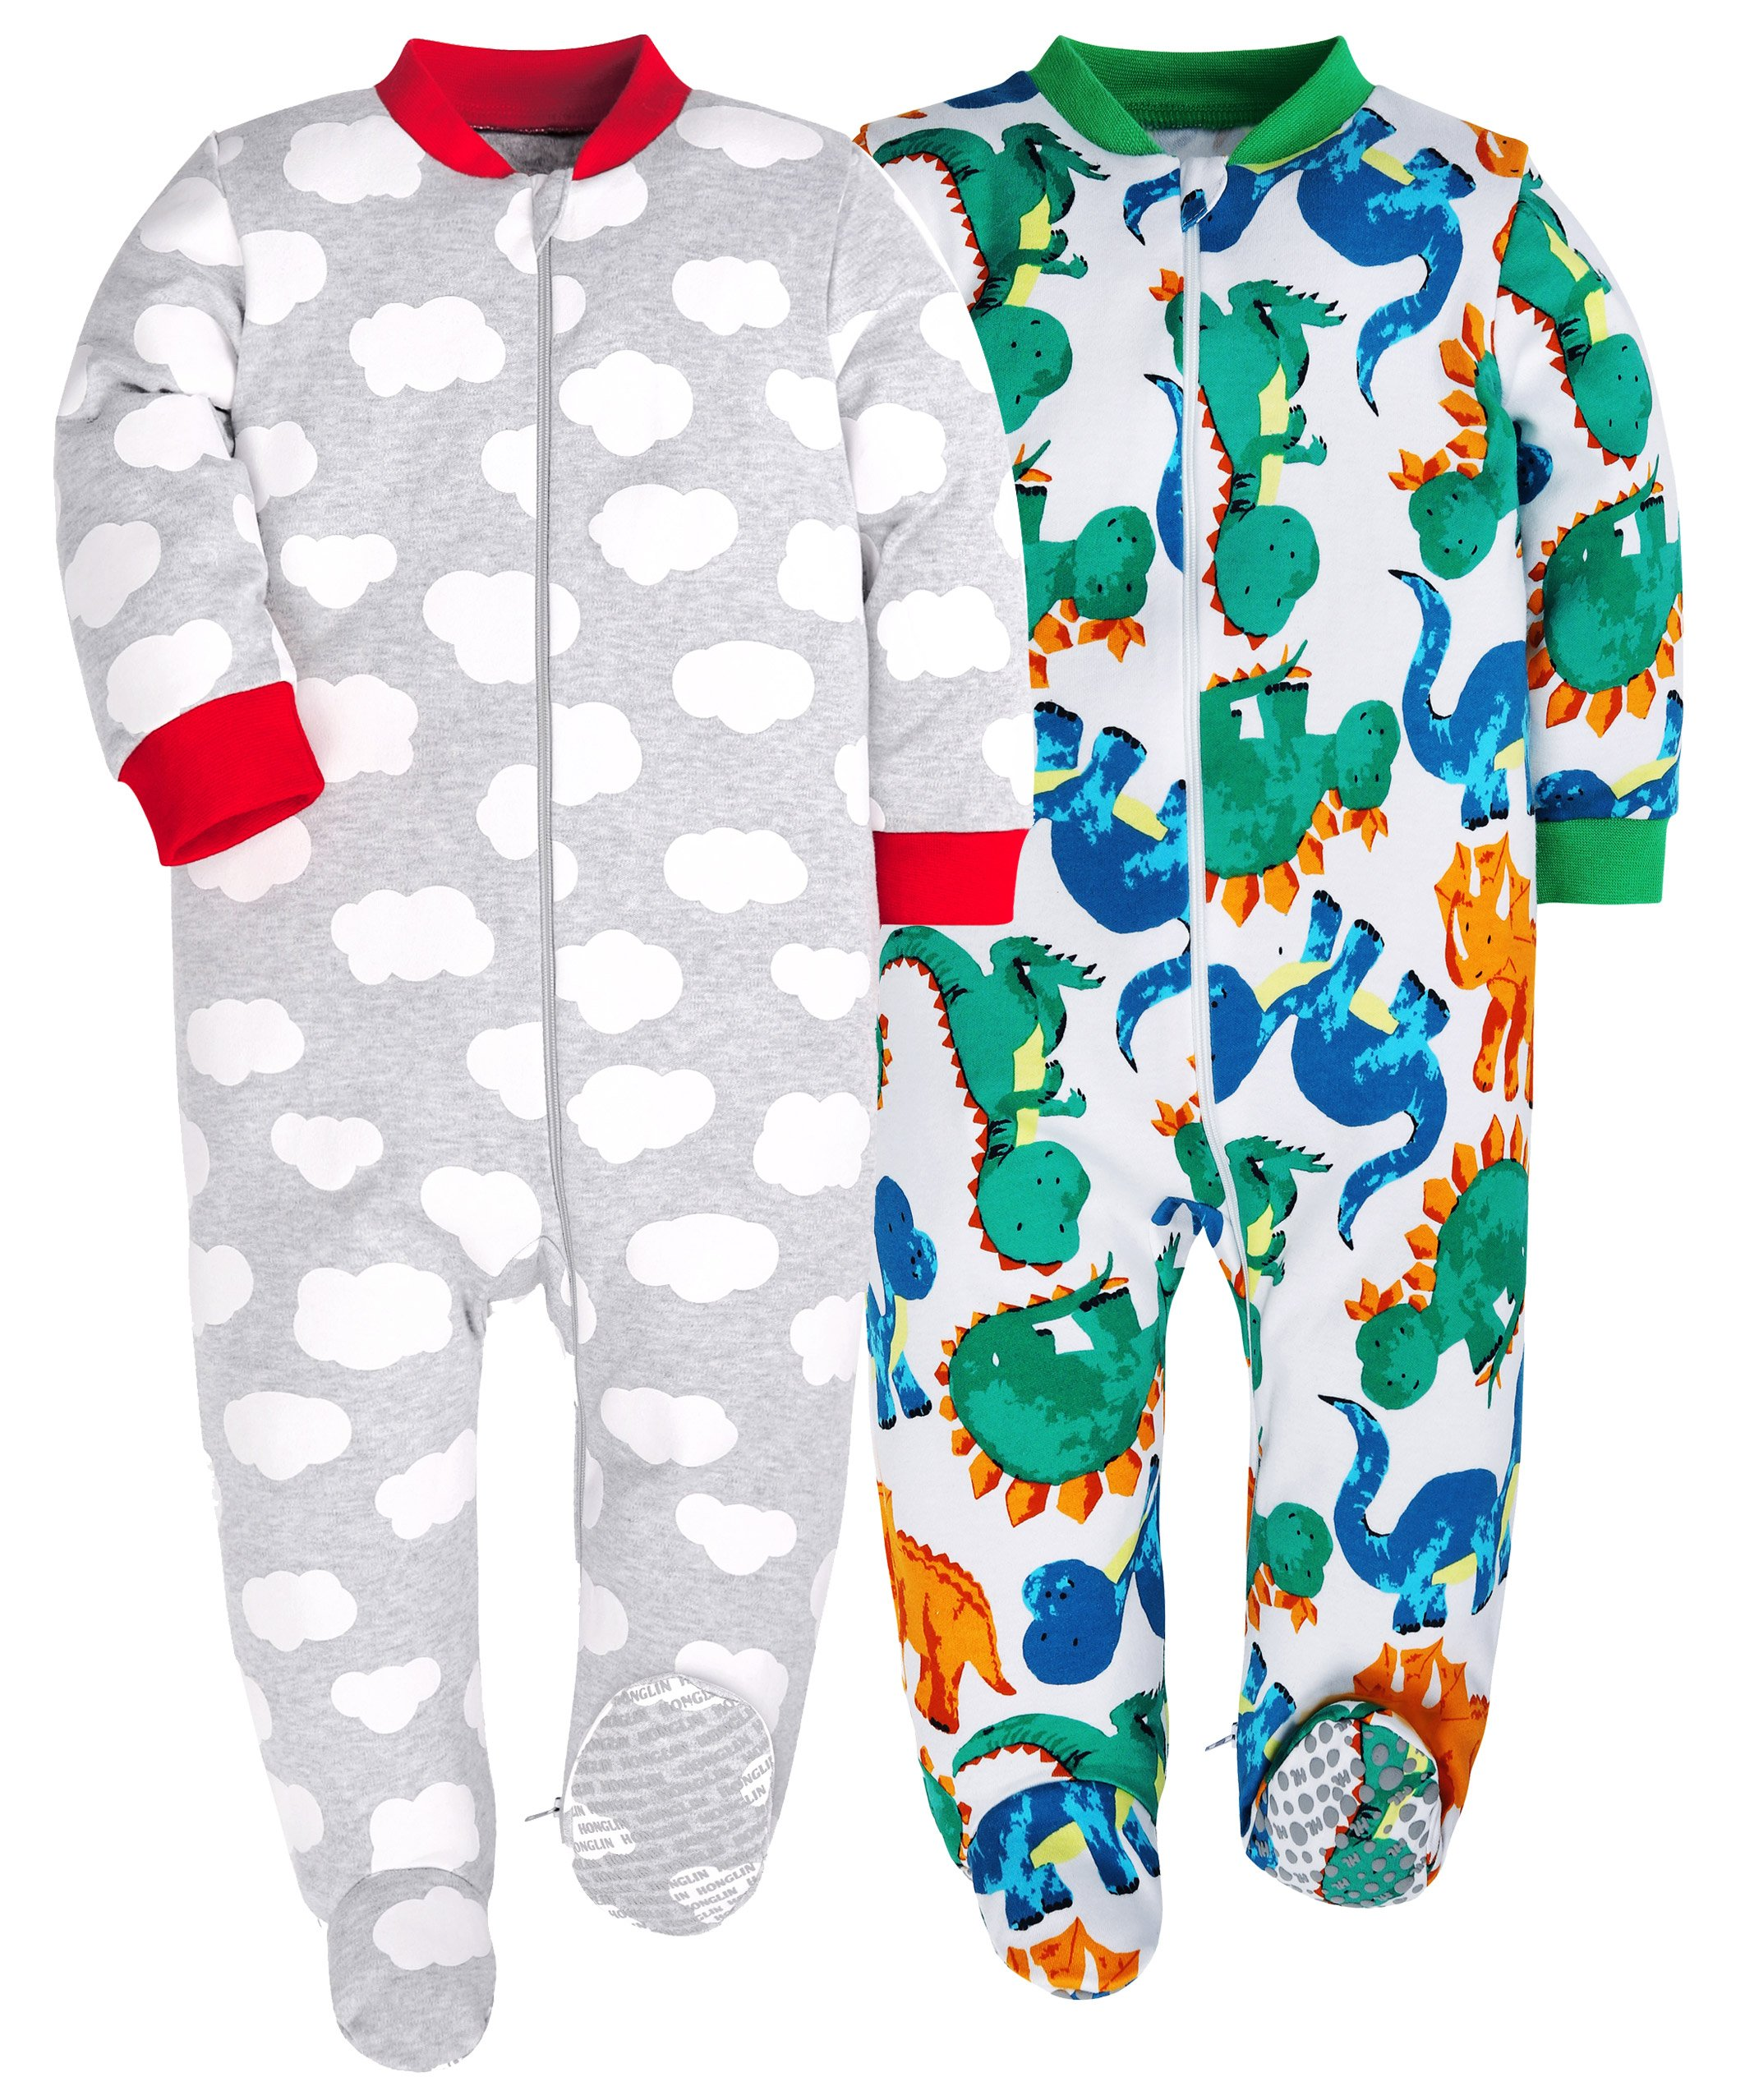 HONGLIN Baby Boys 2-Pack Footed Baby Pajamas Sleepers Rompers 100% Cotton Non-Slipping Sole (Dinosaur+Plane, 12-18 Months)